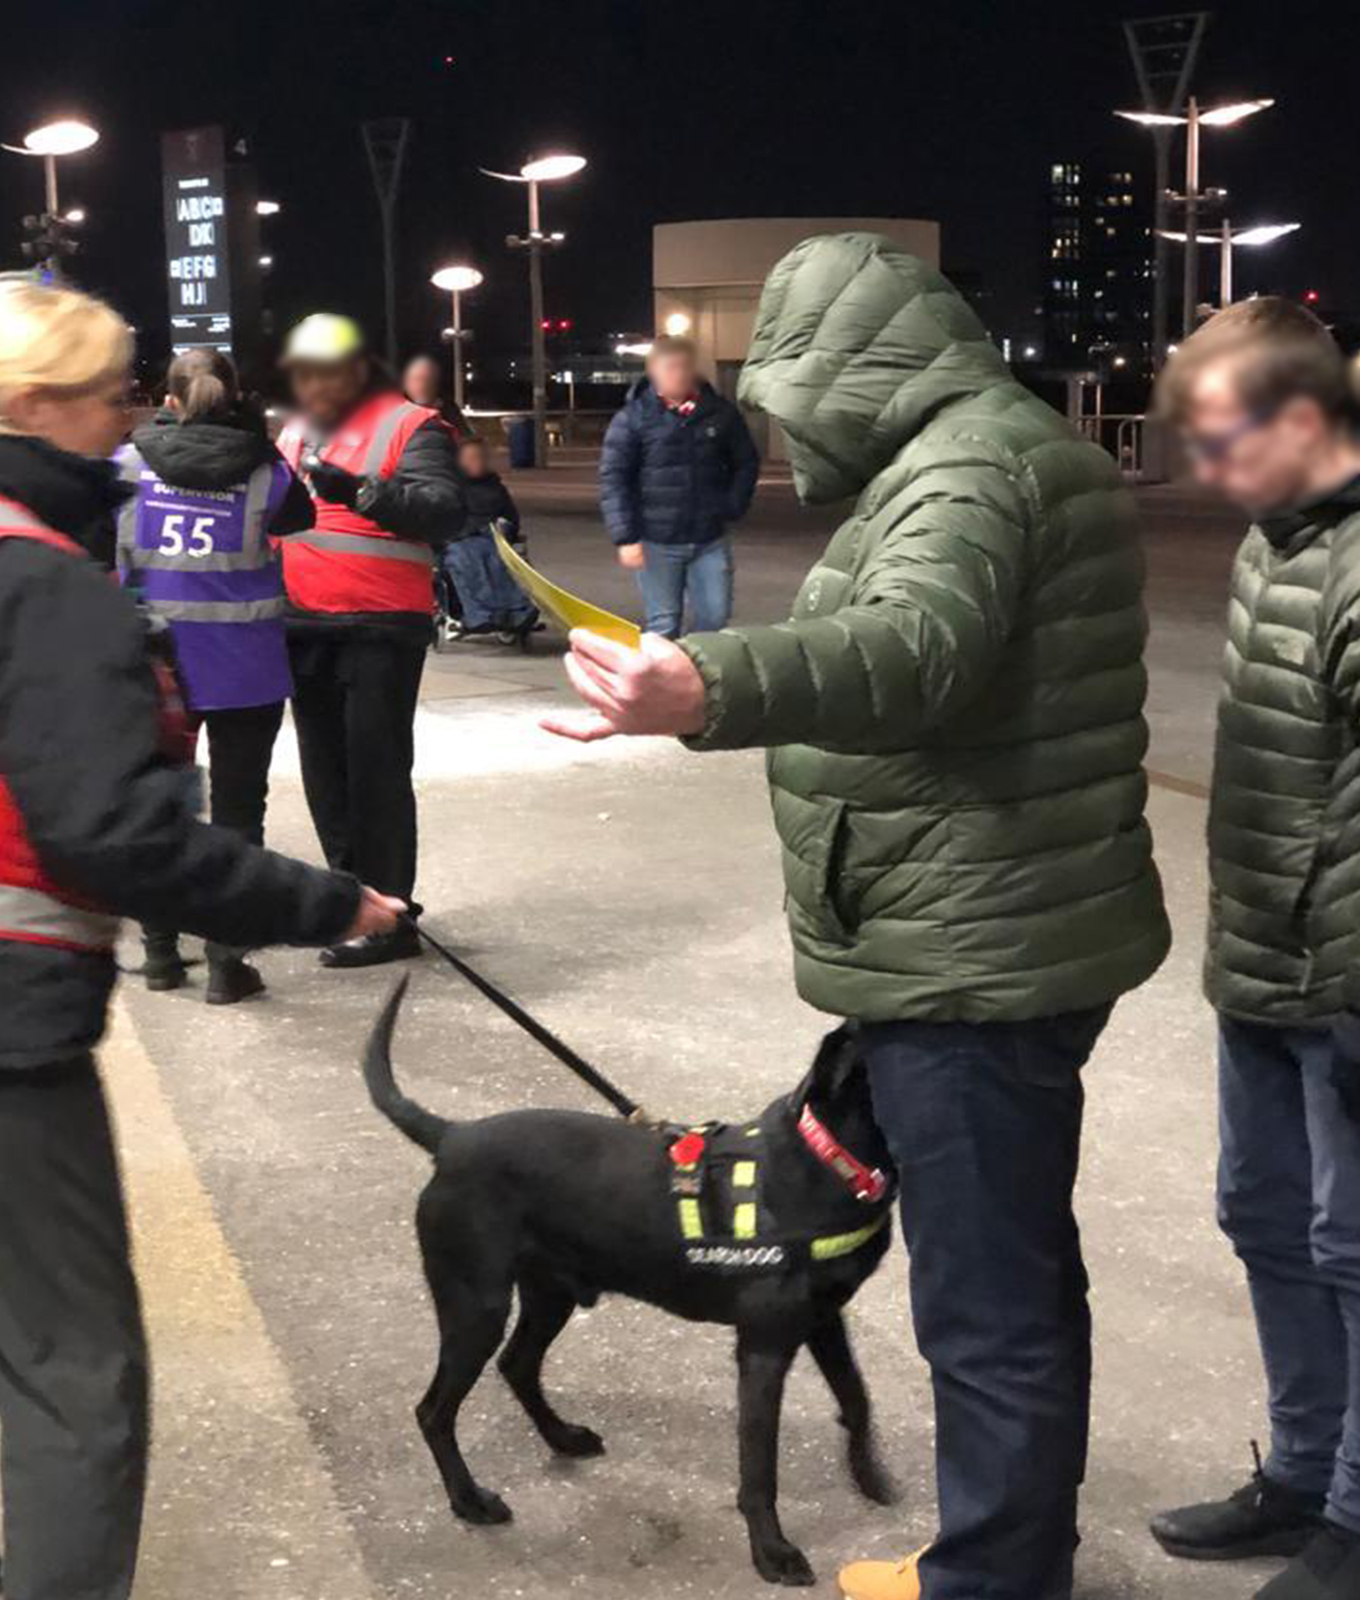 pyrotechnic detection dogs